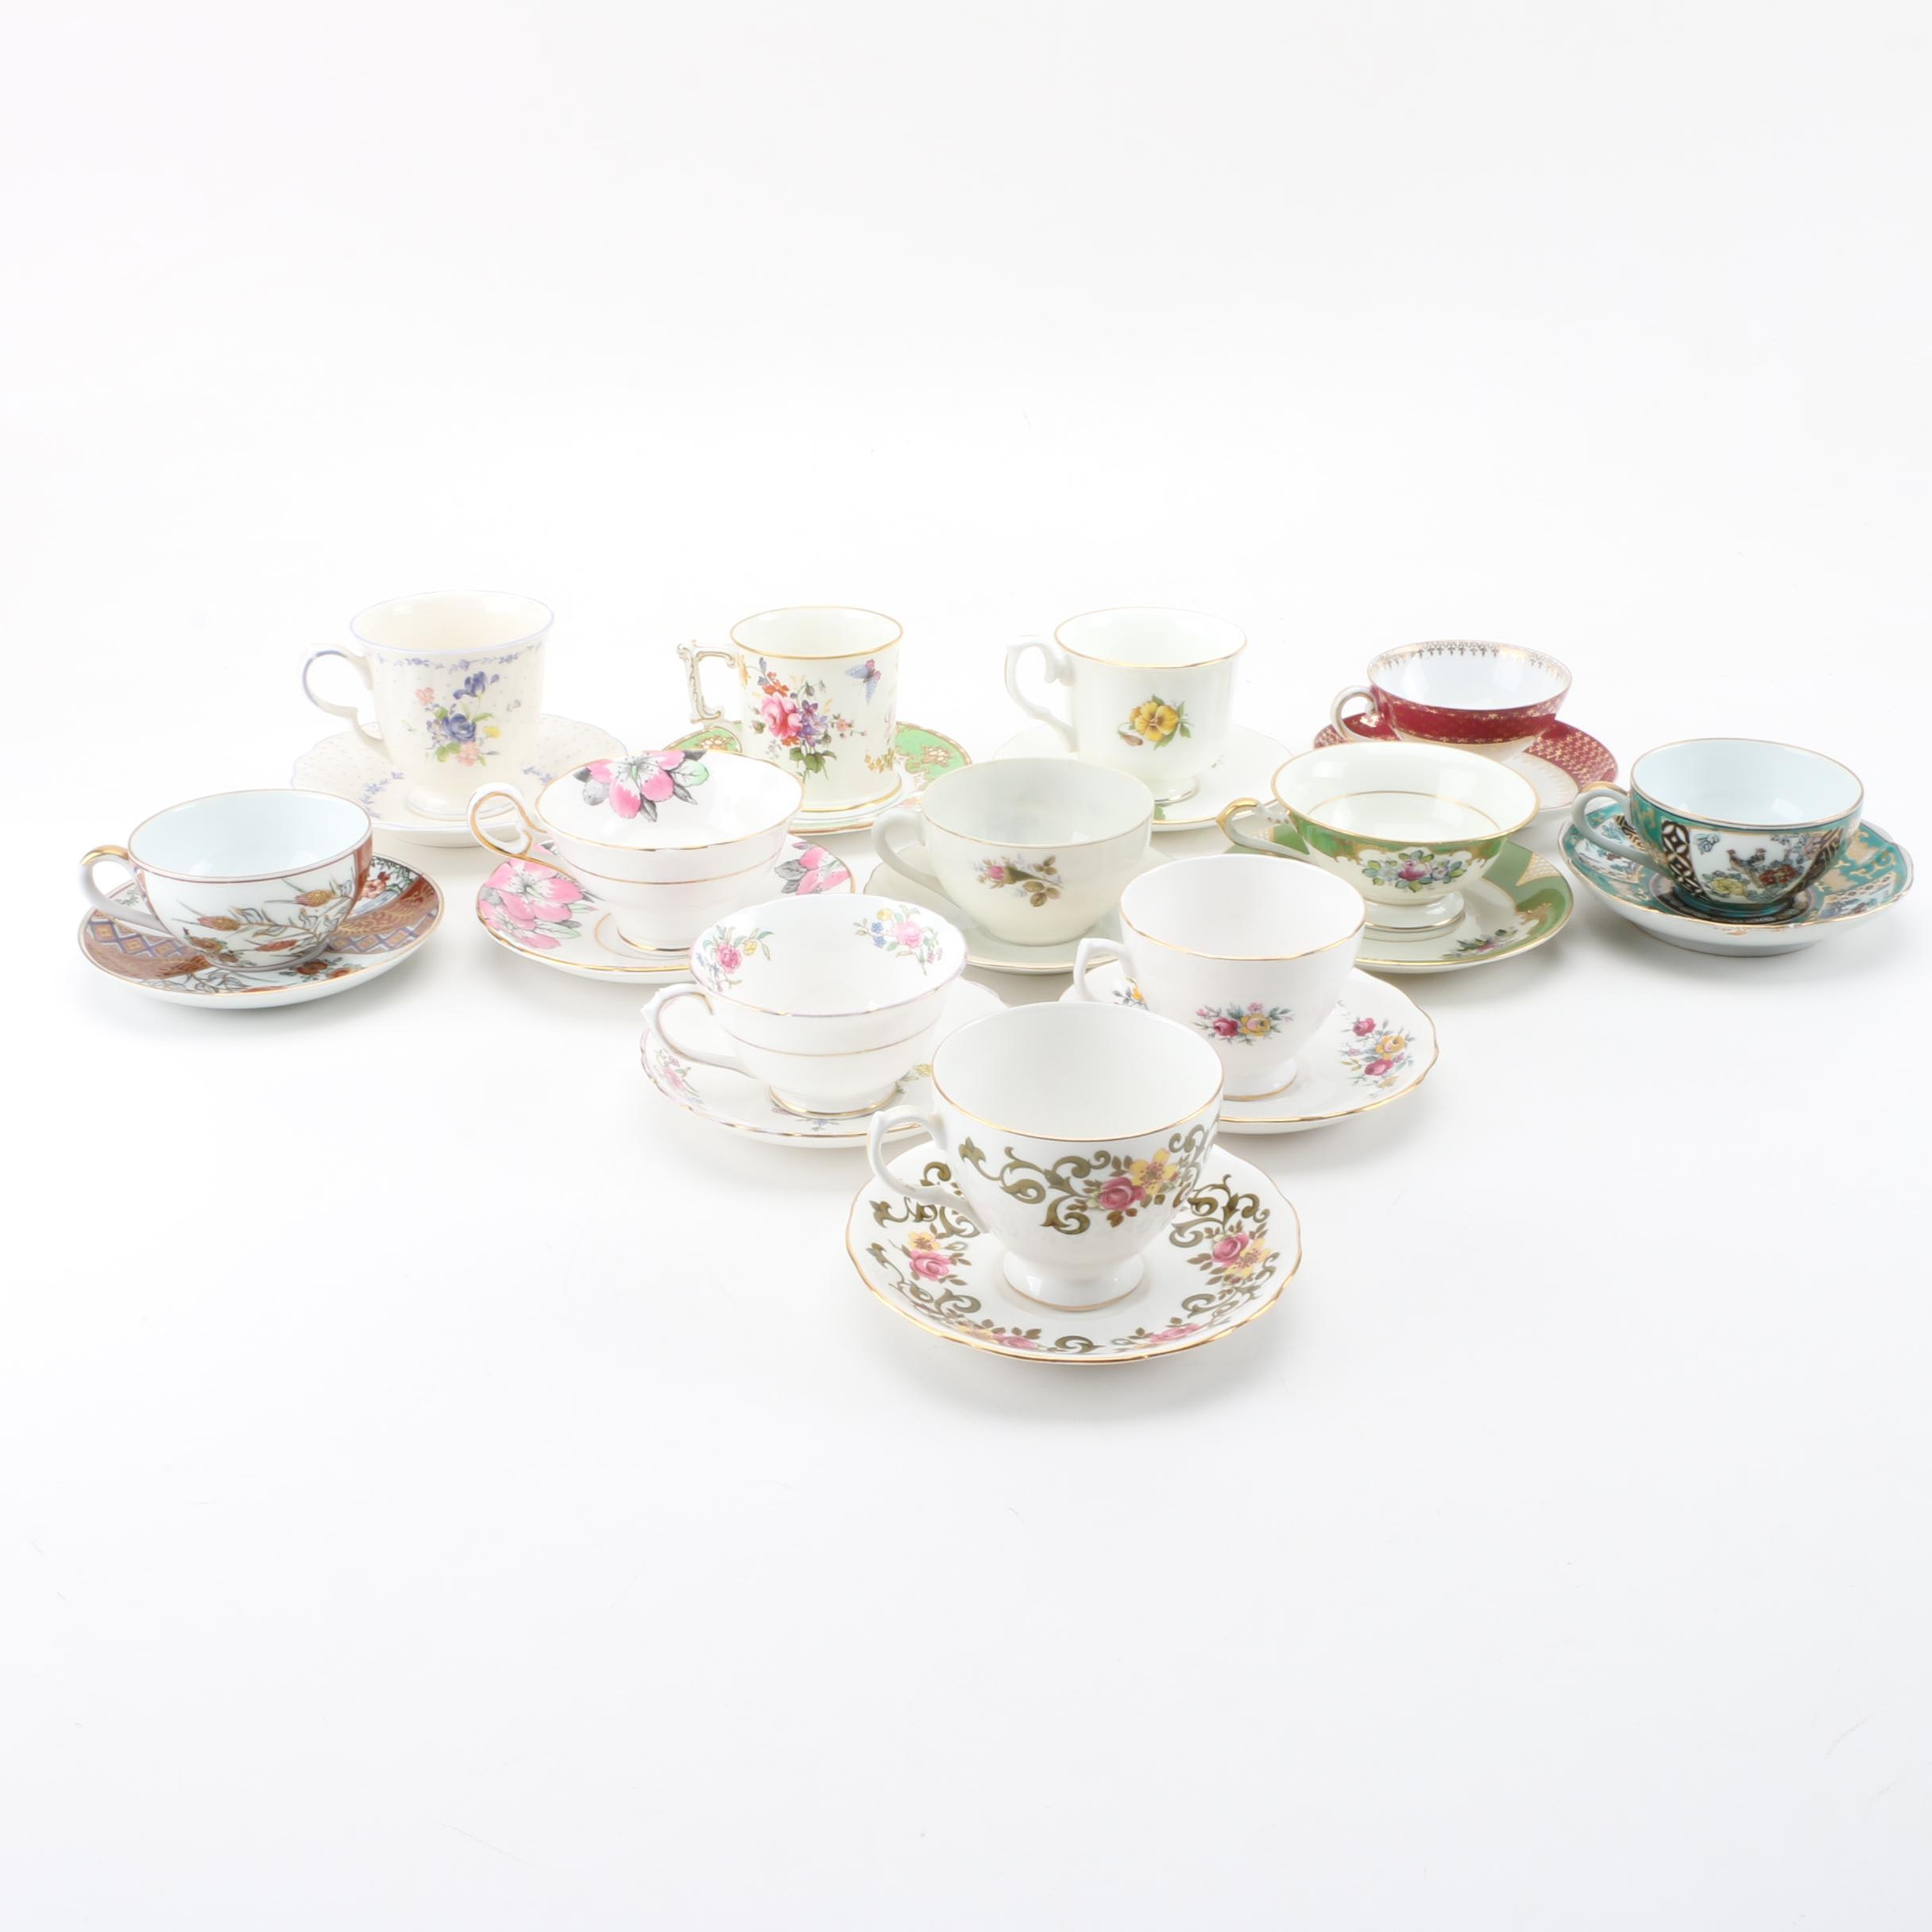 Porcelain Teacups including Antique Carl Tielsch and Co